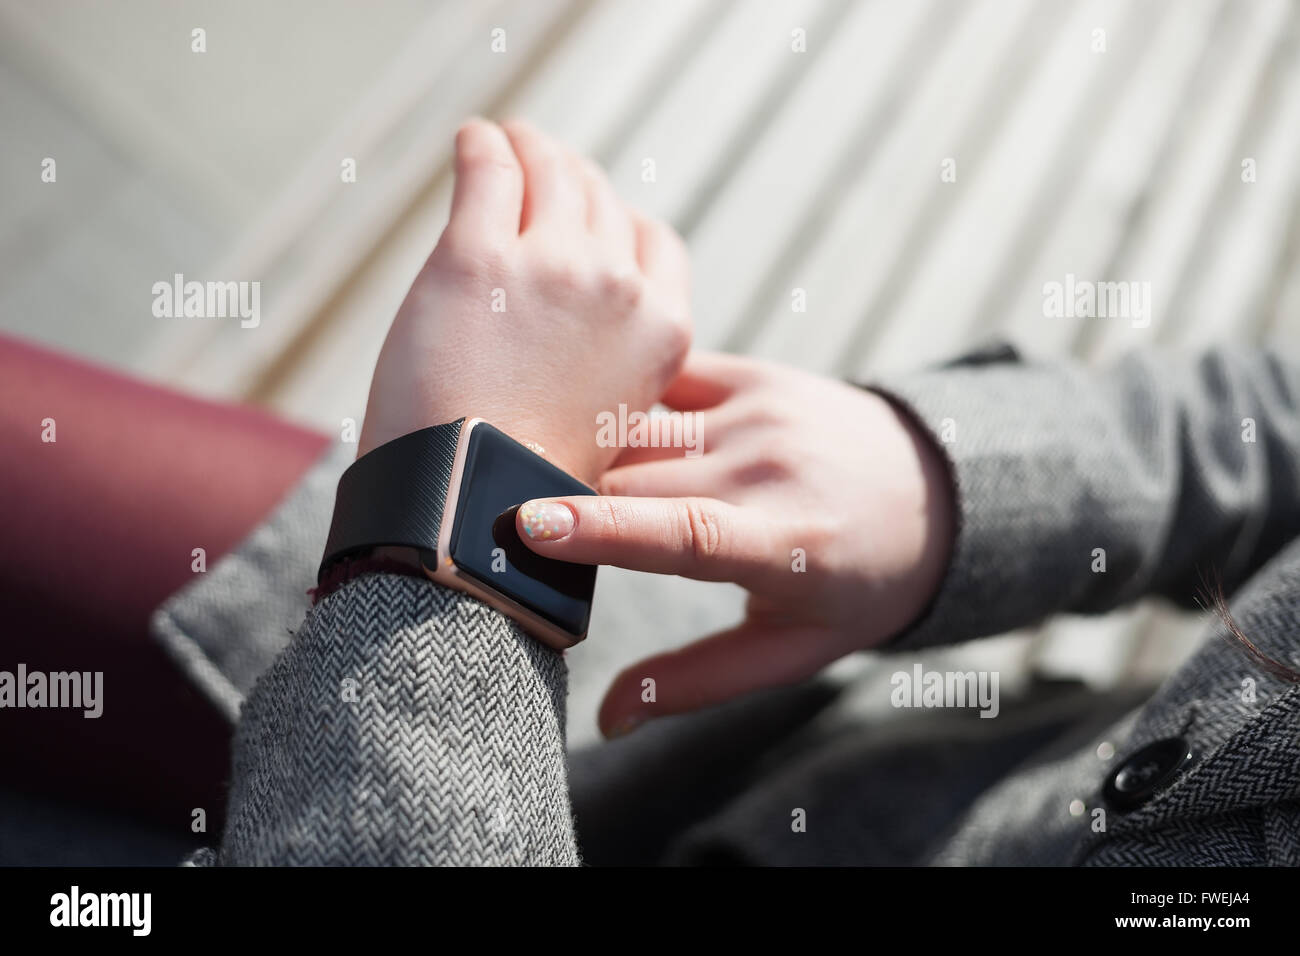 Female using her trendy smart wrist watch sitting on the bench. This person is always connected to social media - Stock Image